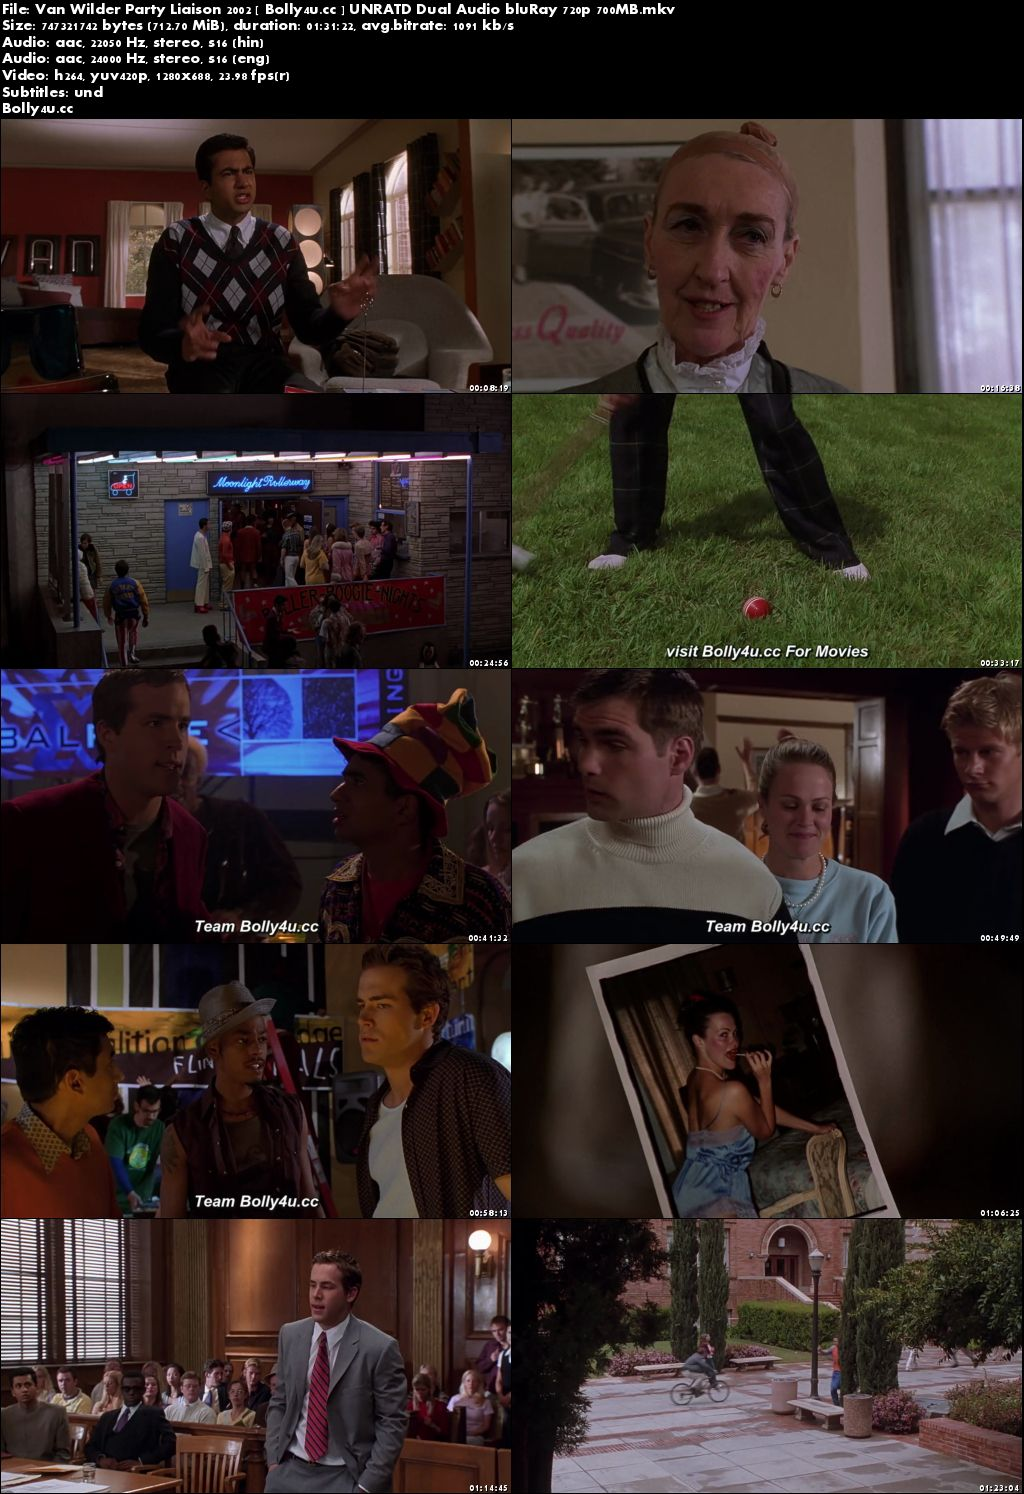 Van Wilder Party Liaison 2002 BRRip 300MB UNRATD Hindi Dual Audio 480p Download